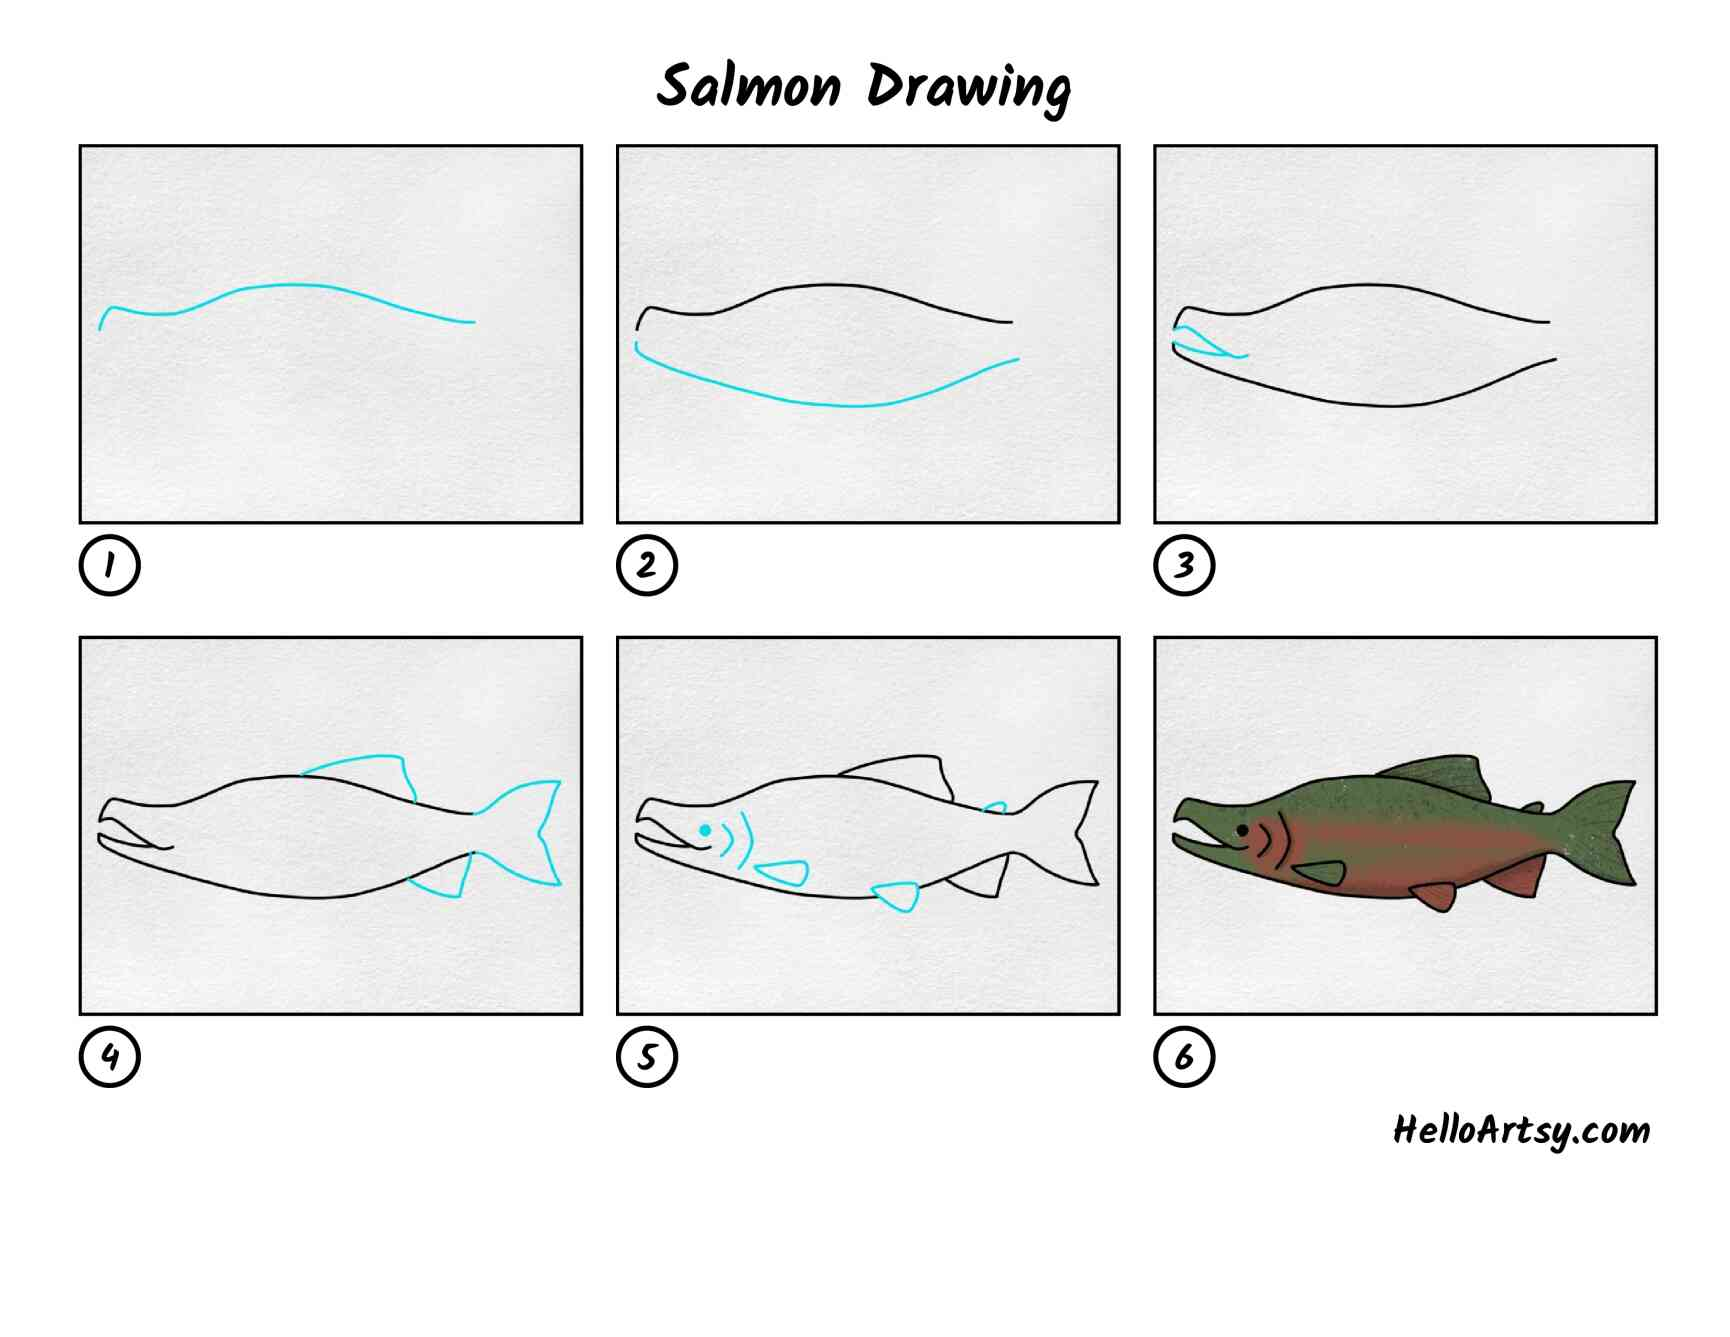 Salmon Drawing: All Steps